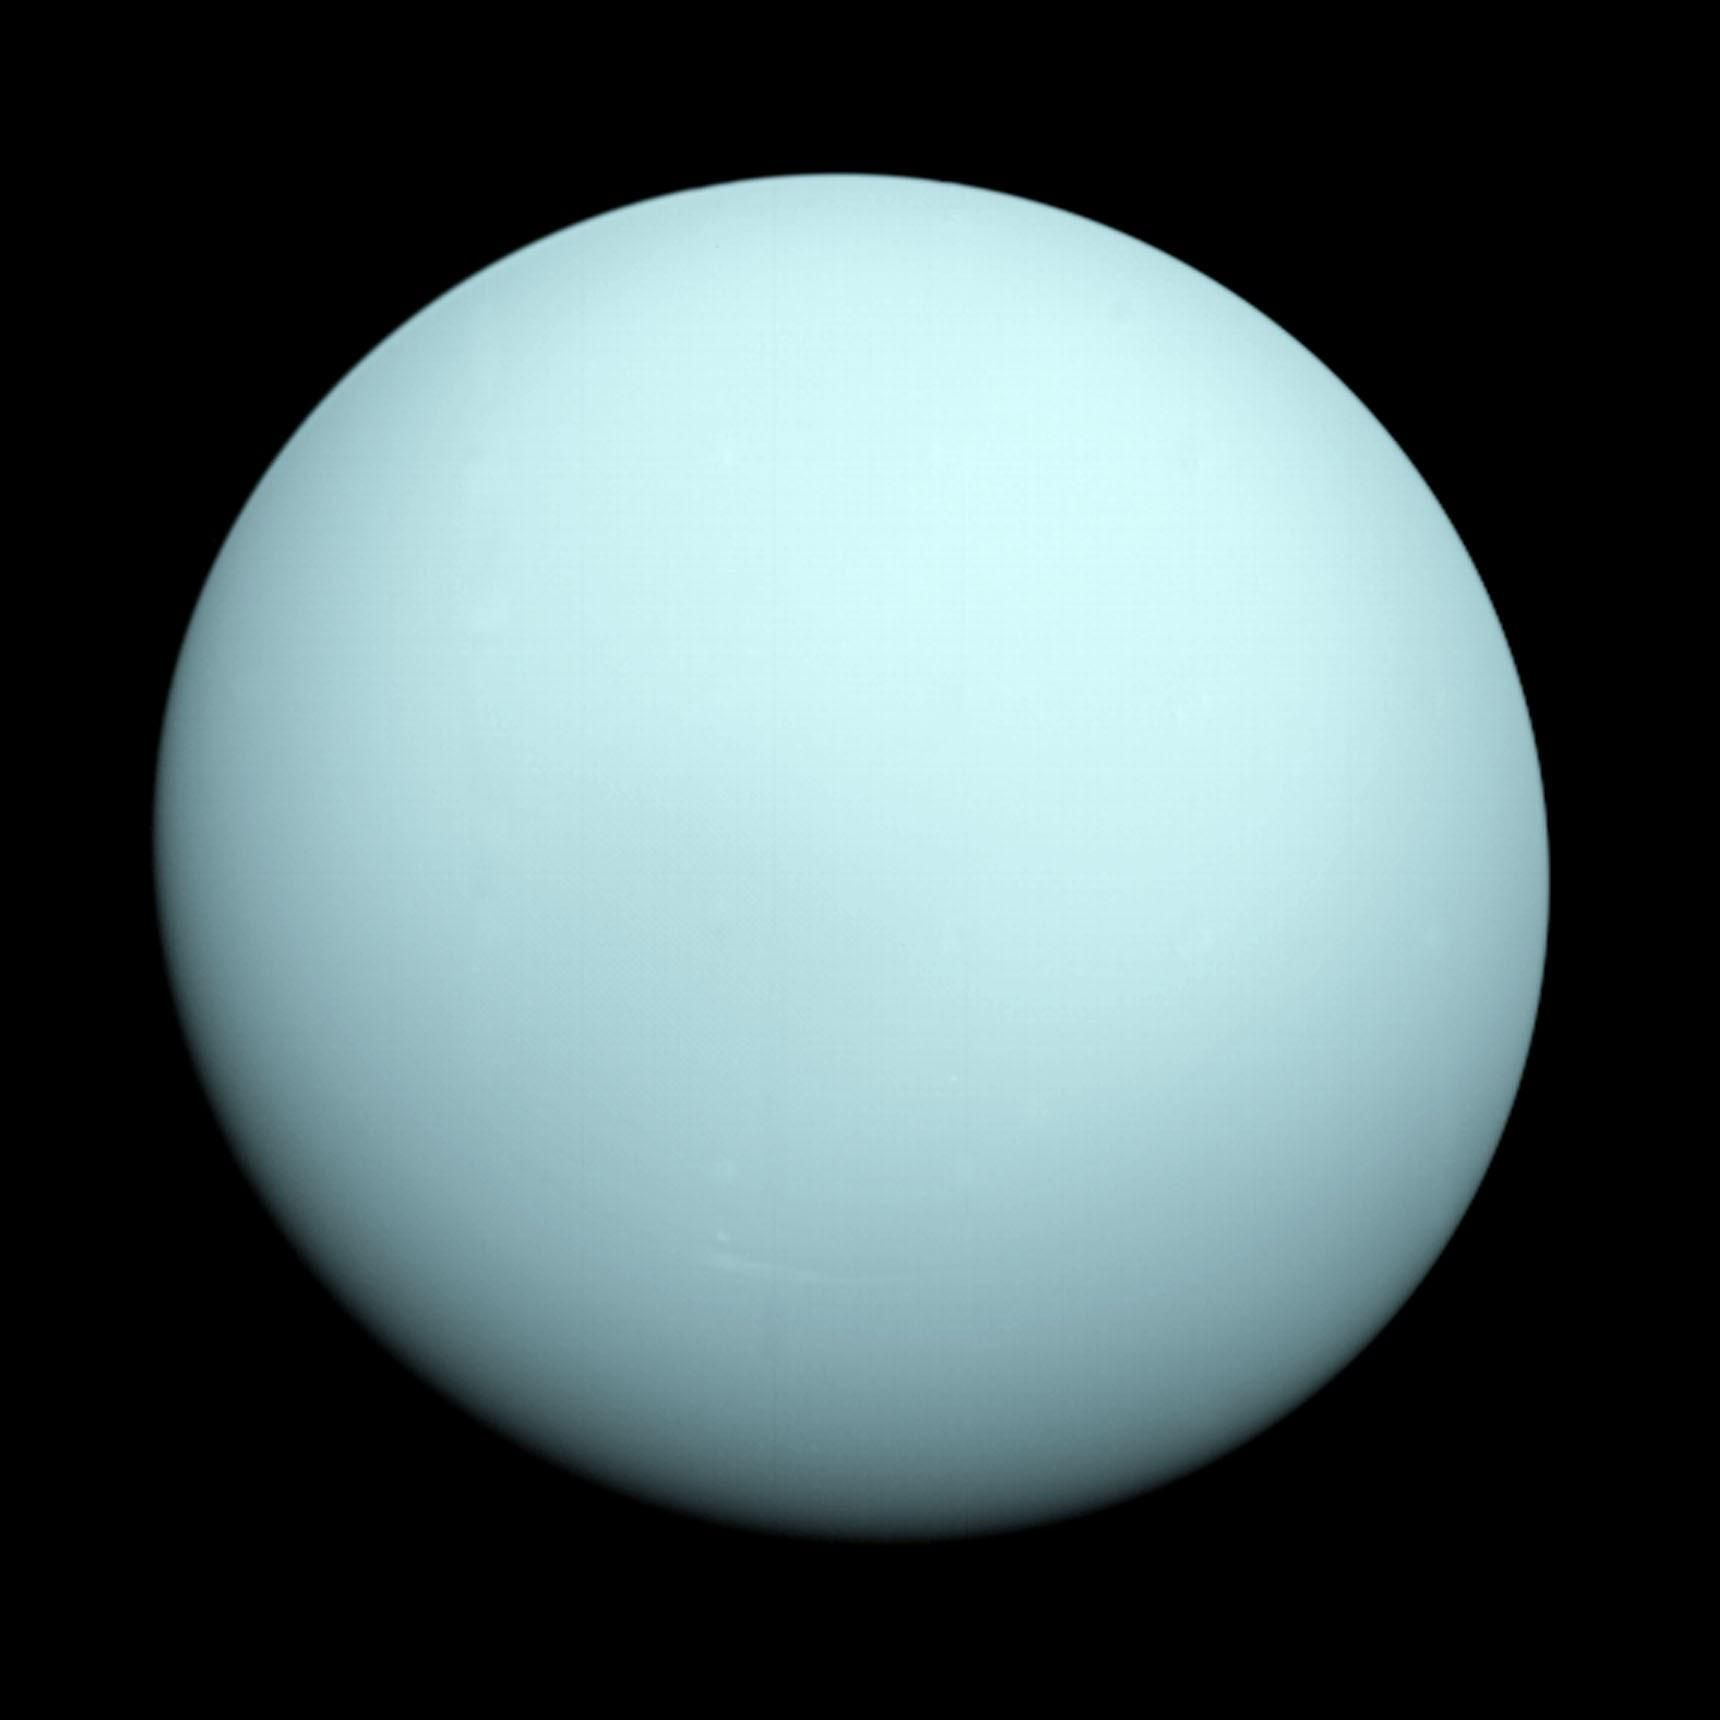 Uranus This Is An Image Of The Planet Uranus Taken By The Spacecraft Voyager 2 In 1986 Credit Nasa Jpl Caltech Planets Planets And Moons Space And Astronomy